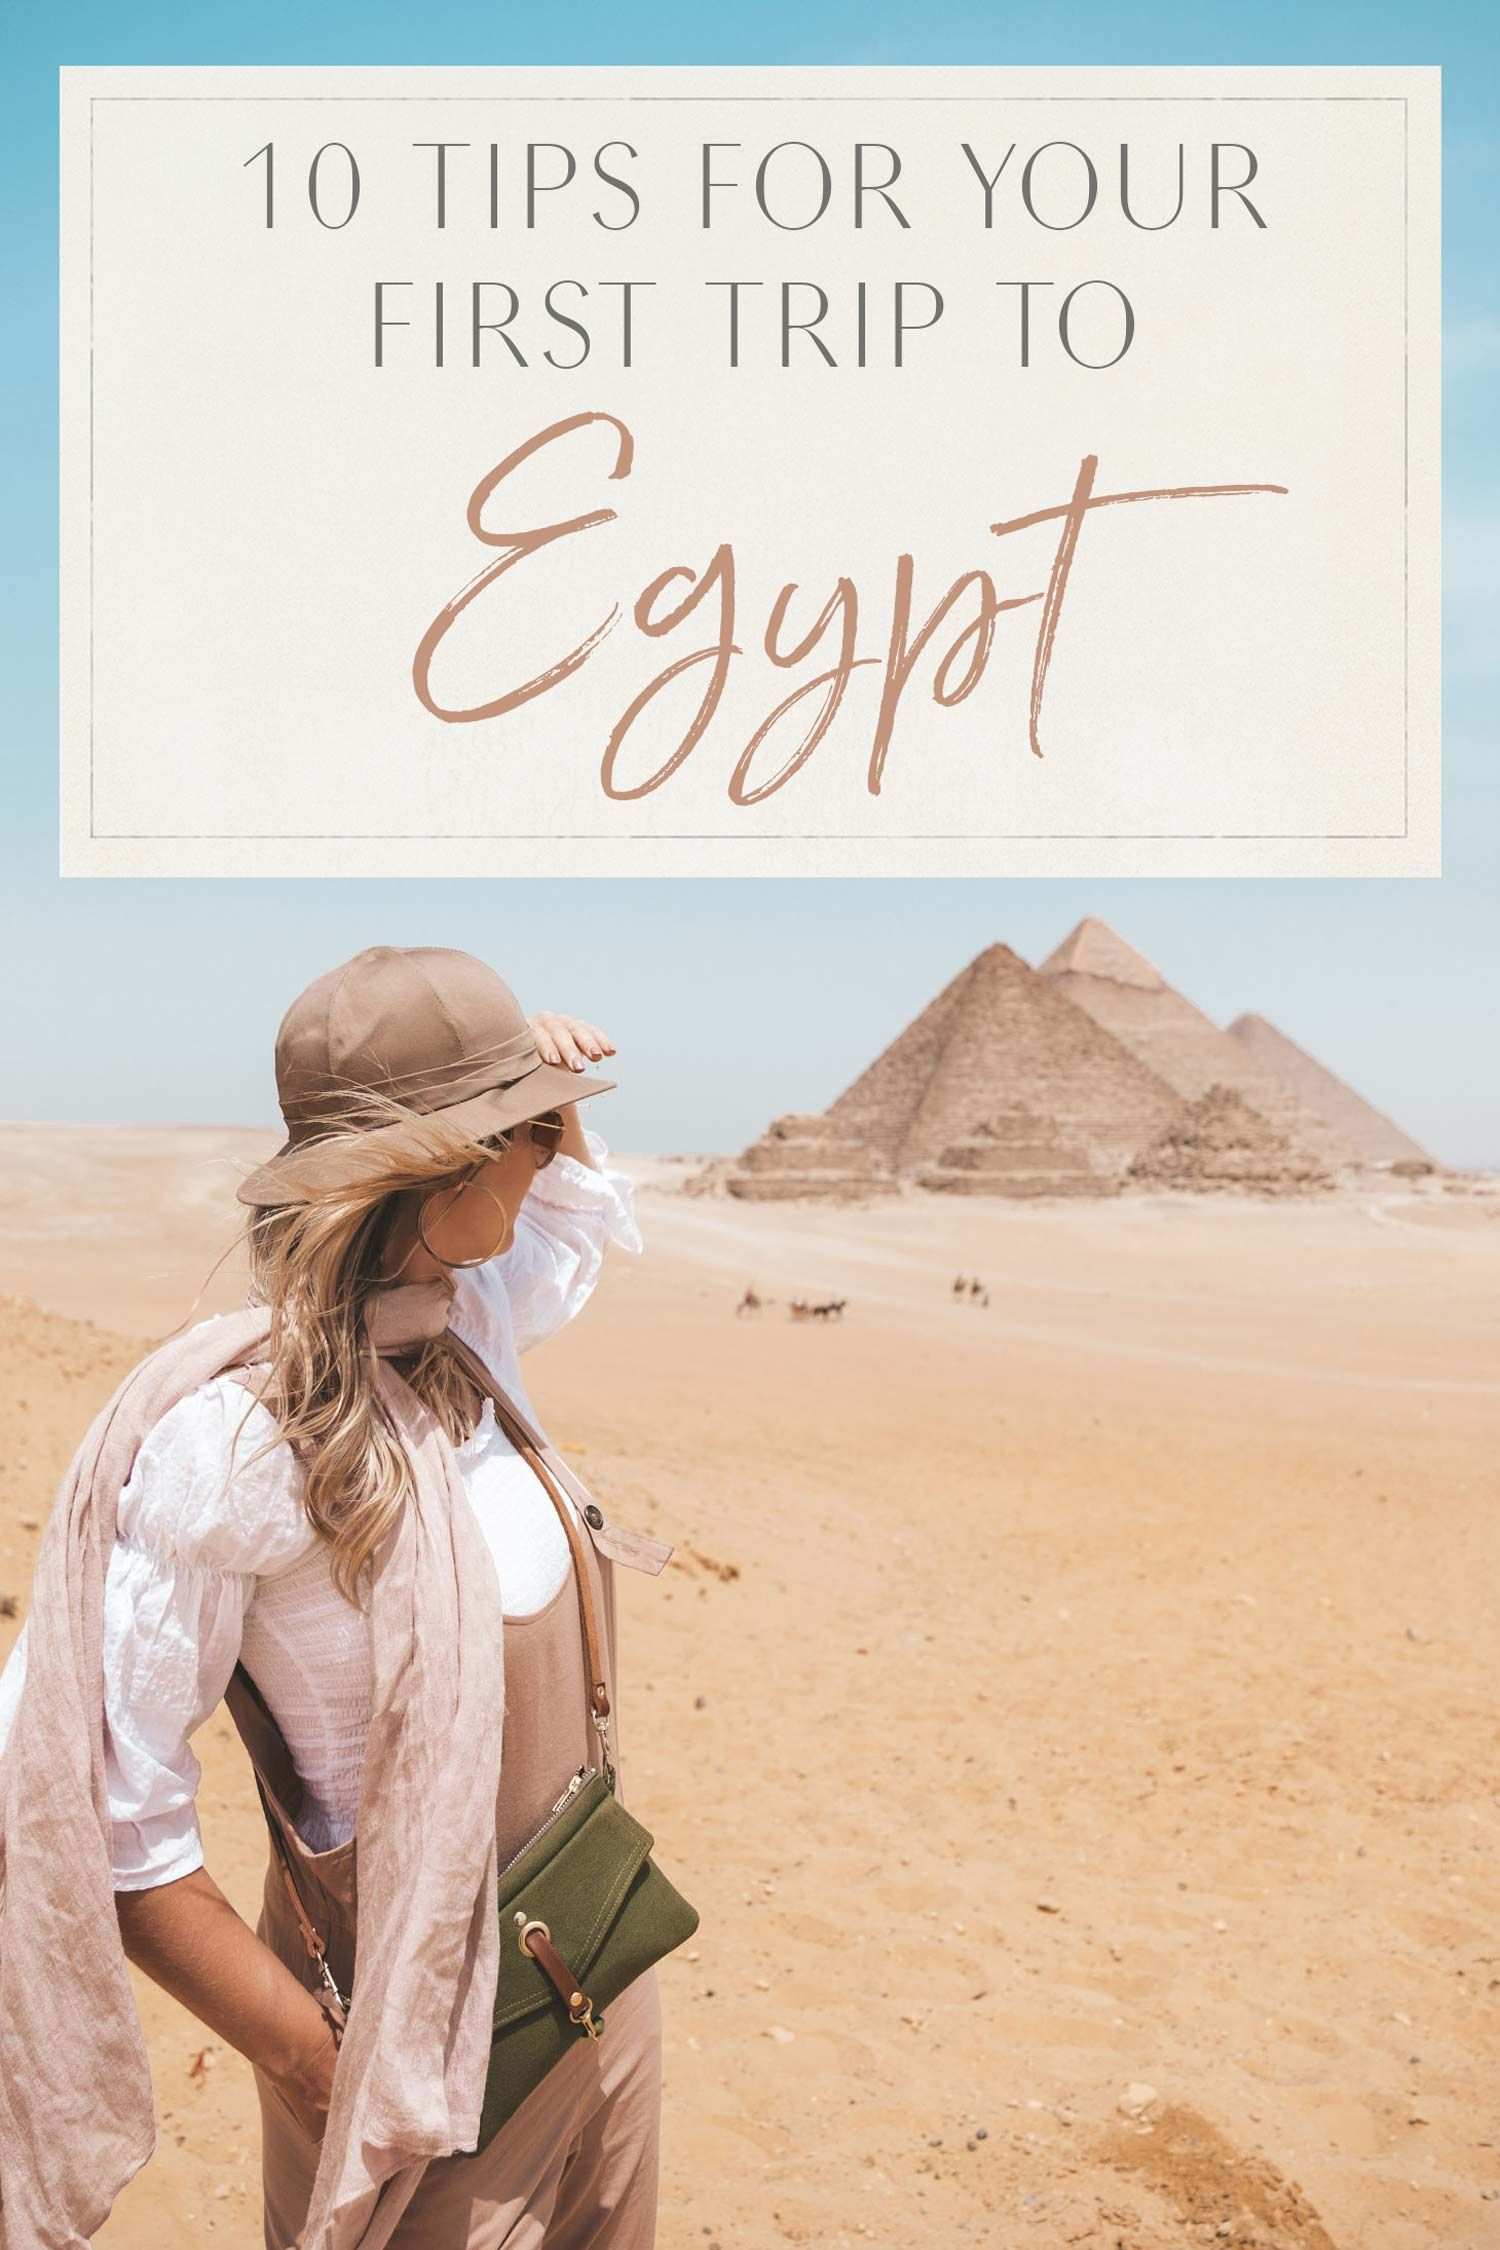 10 Tips for Your First Trip to Egypt